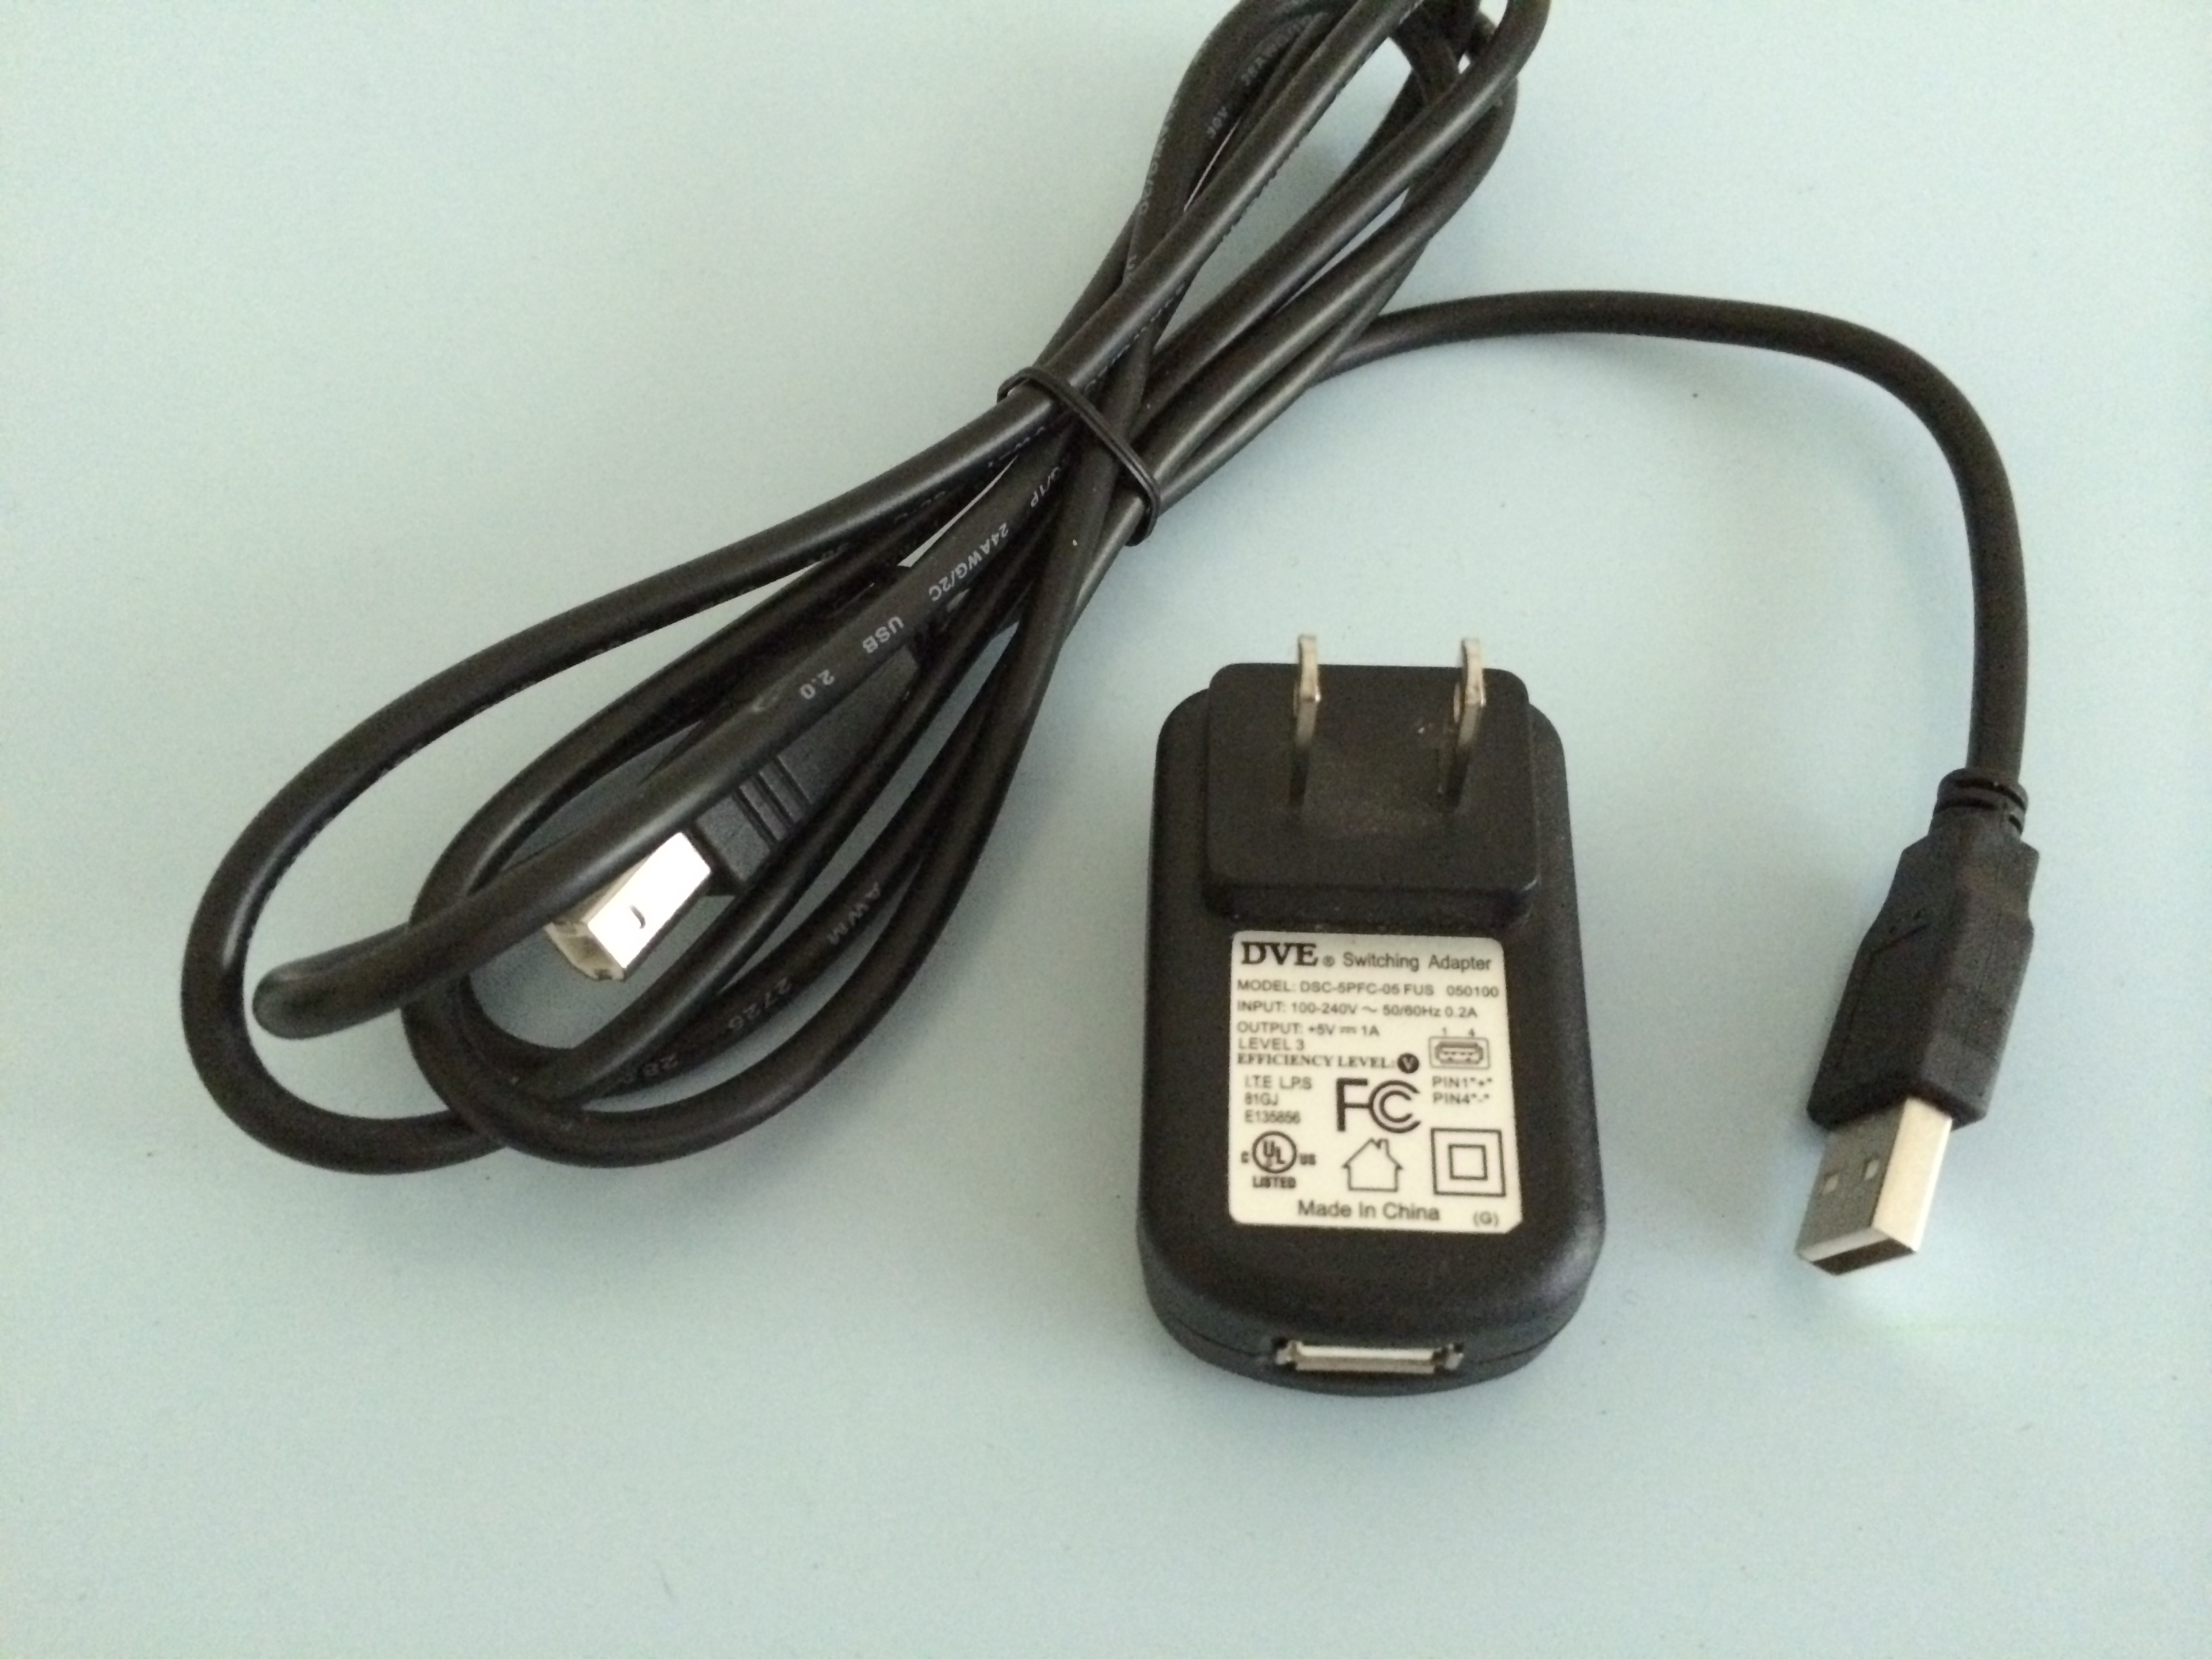 Picture of Find a Male USB and a USB Charger/power Supply